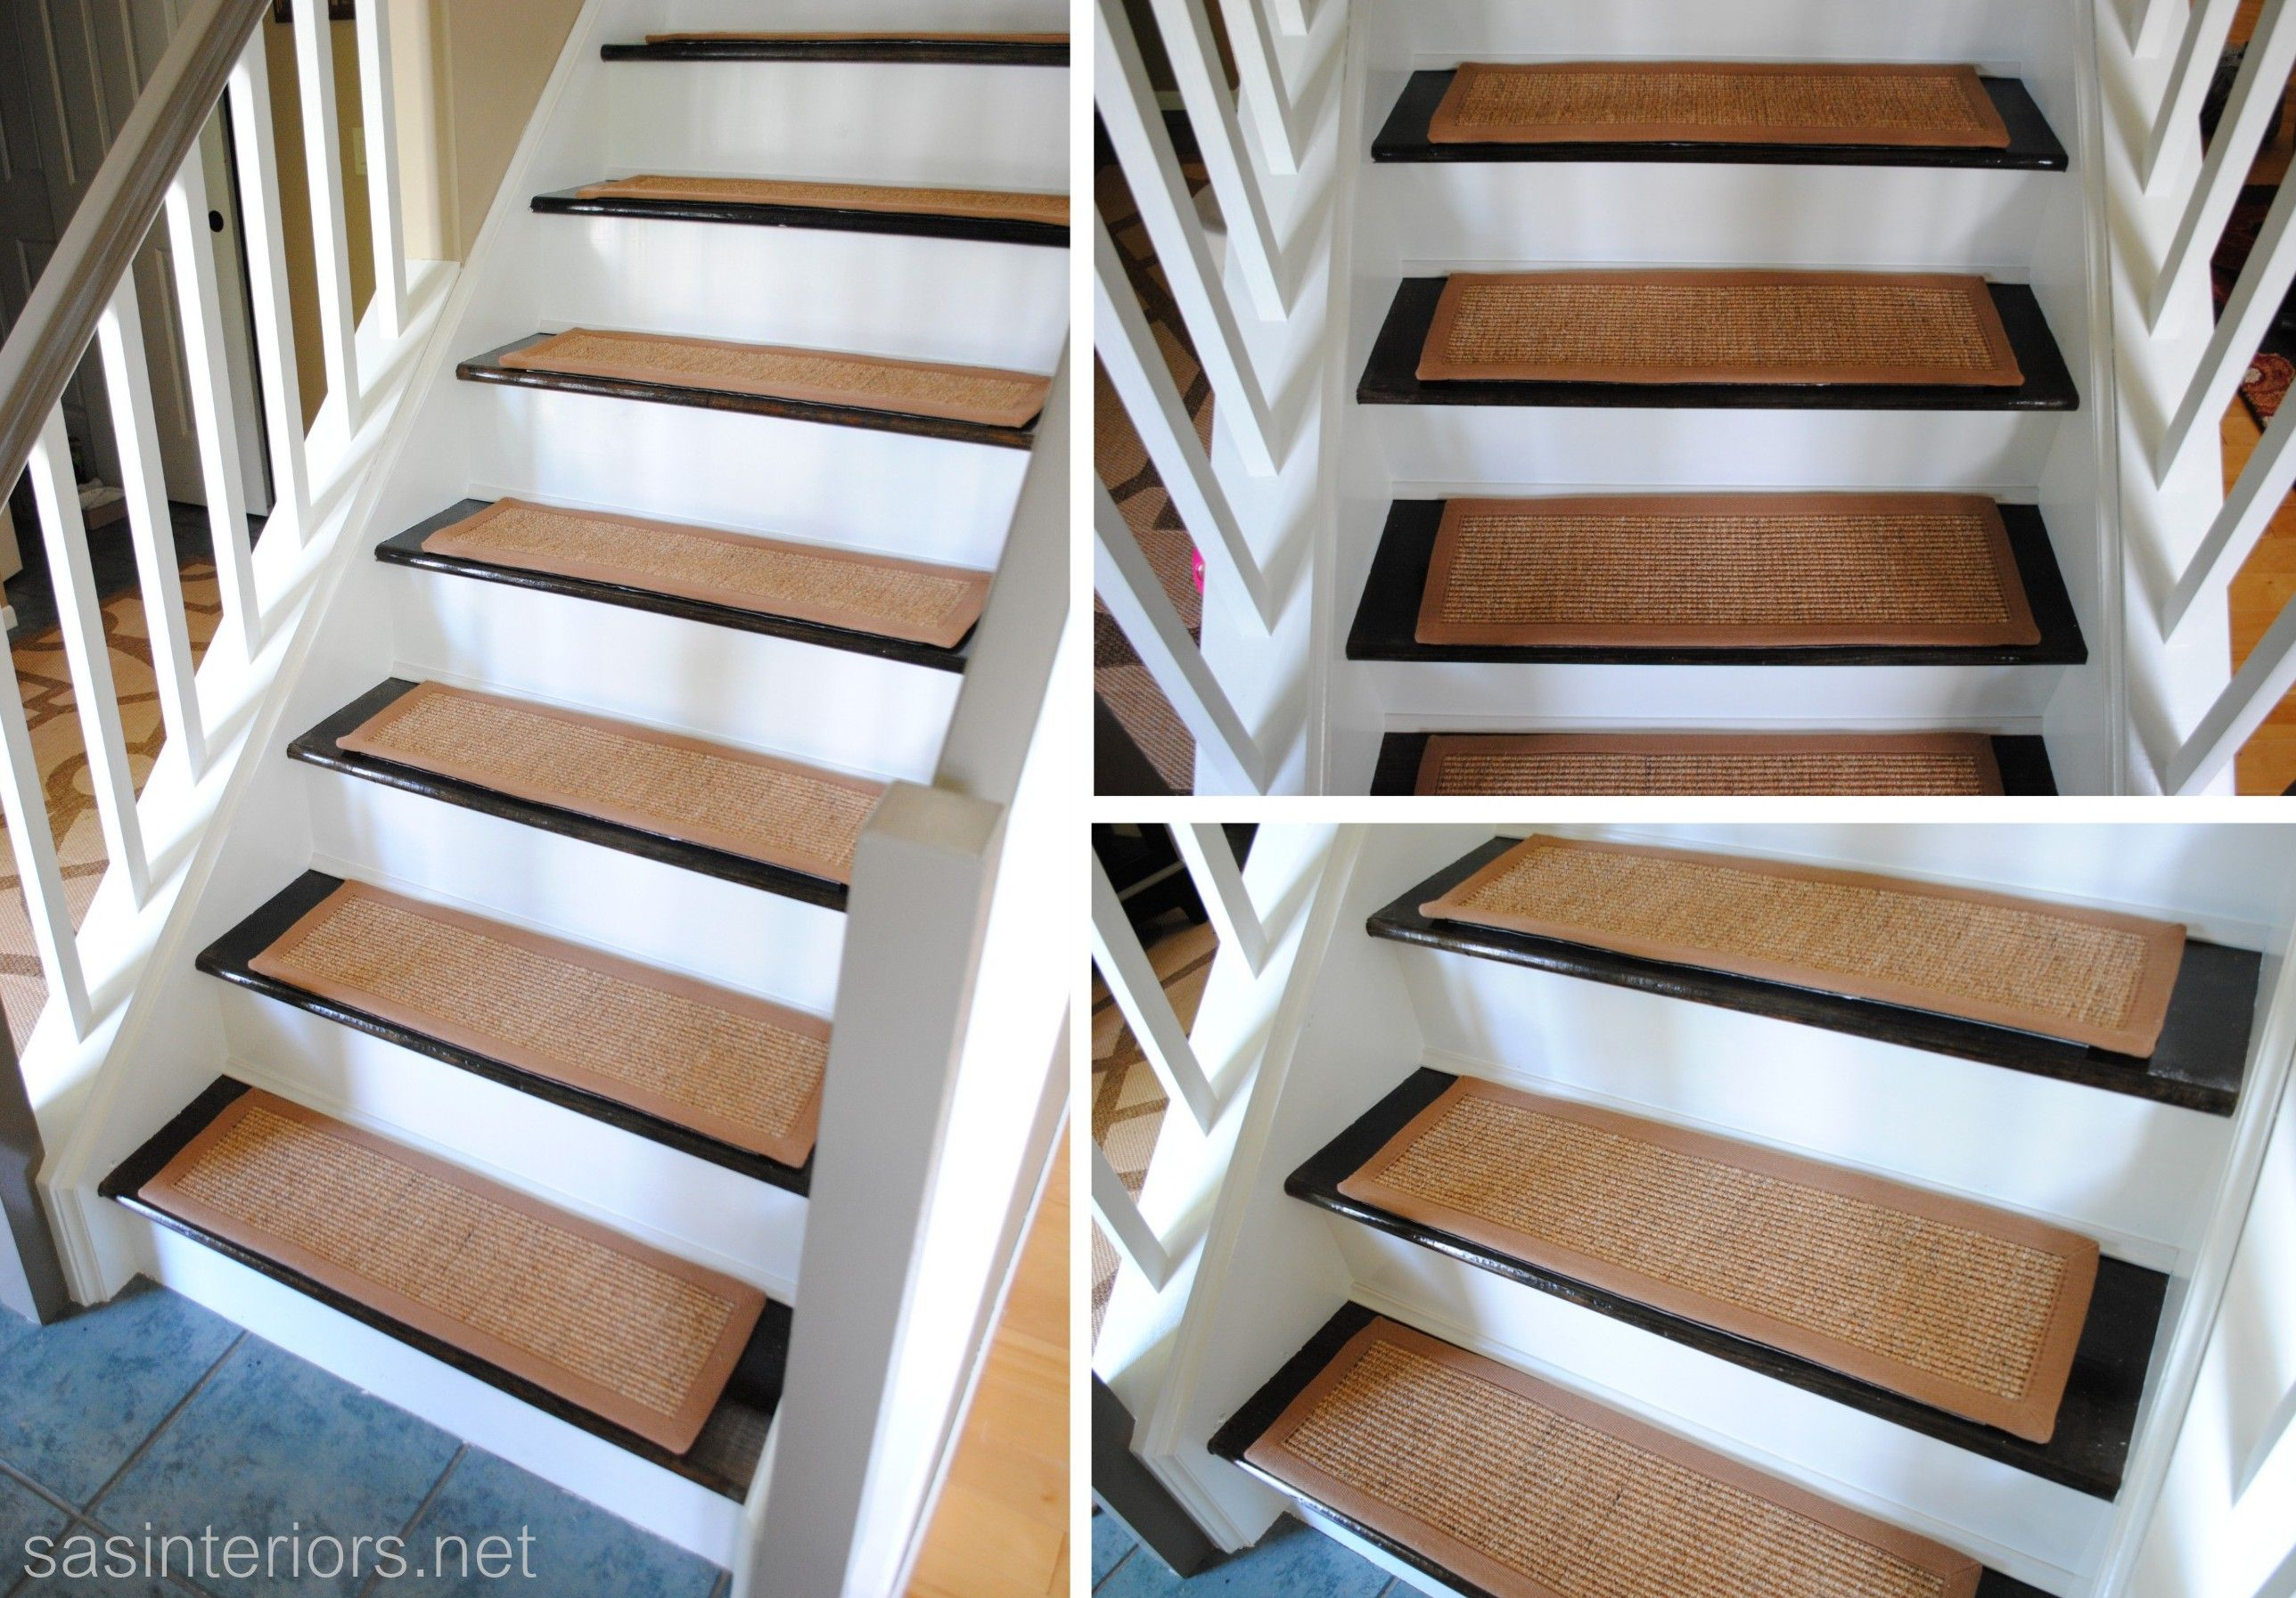 My Staircase Is Finished Sas Interiors Carpet Stairs | Carpet Treads For Wooden Stairs | Commercial Rubber | Rectangular Cord Treads | Carpet Wrapped | Self Adhesive | Different Style Stair